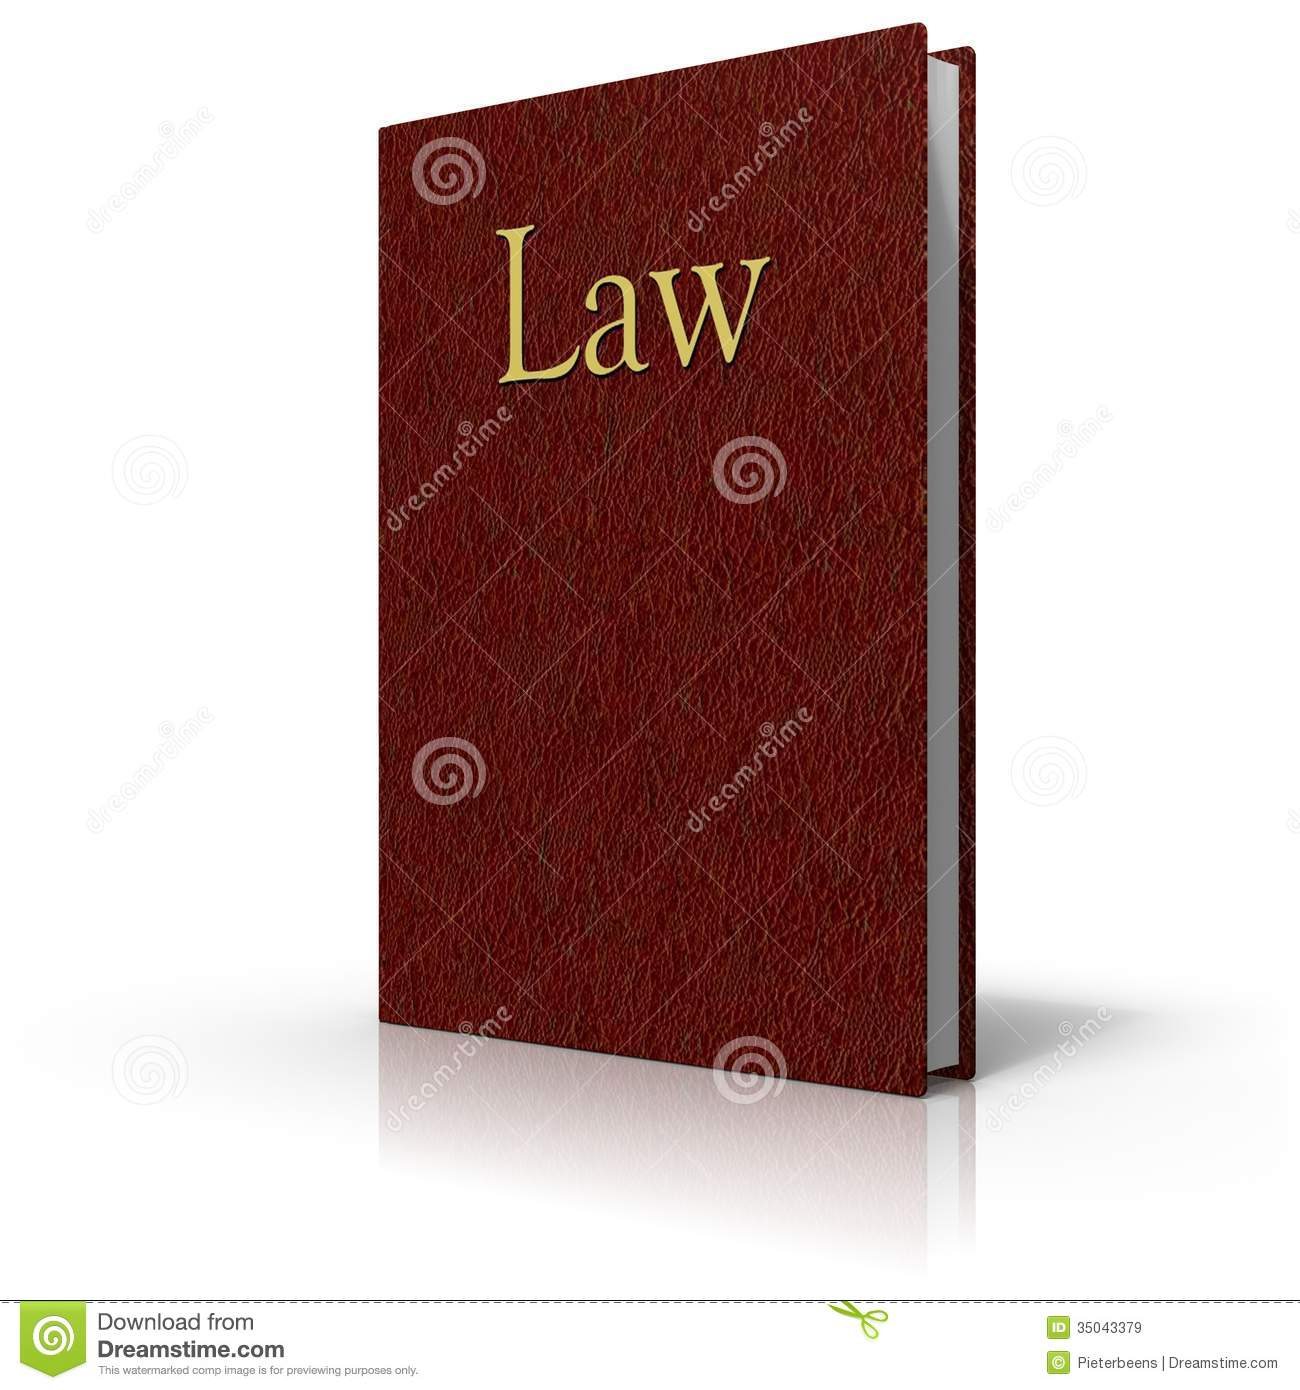 Law Book Cover Design : Law book with red leather cover royalty free stock images